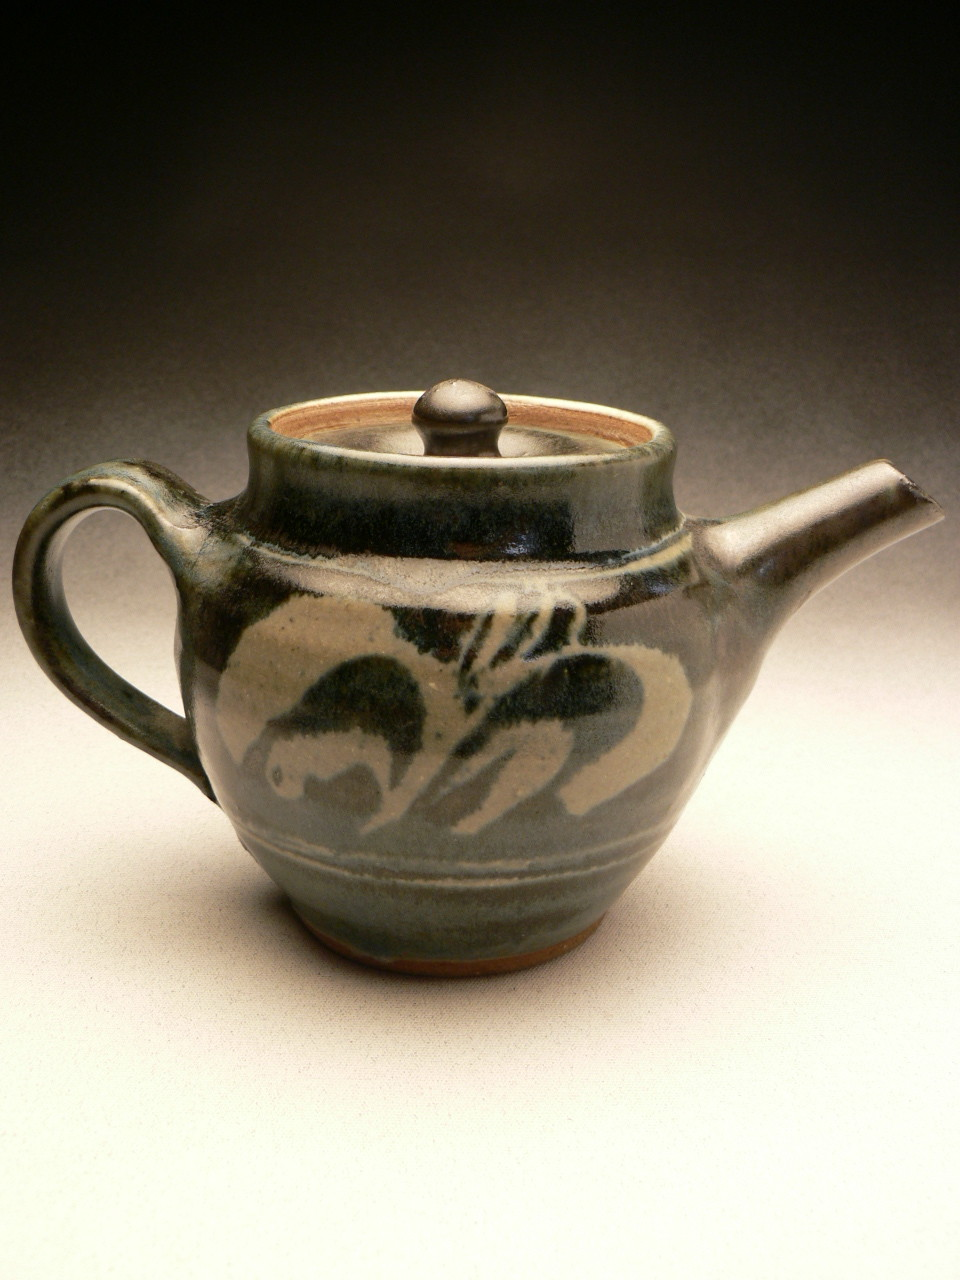 MIREK SMISEK - VINTAGE TEAPOT, STONEWARE, GREY GLAZE, WAX RESIST, BRUSHWORK, DARK BLUE OVER GLAZE, POTTER'S STAMP, RESTORED SMALL CHIP ON SPOUT- 11cmH x 12cmD x 20cmW, 0.9kg - NZ$875 - #MSR6